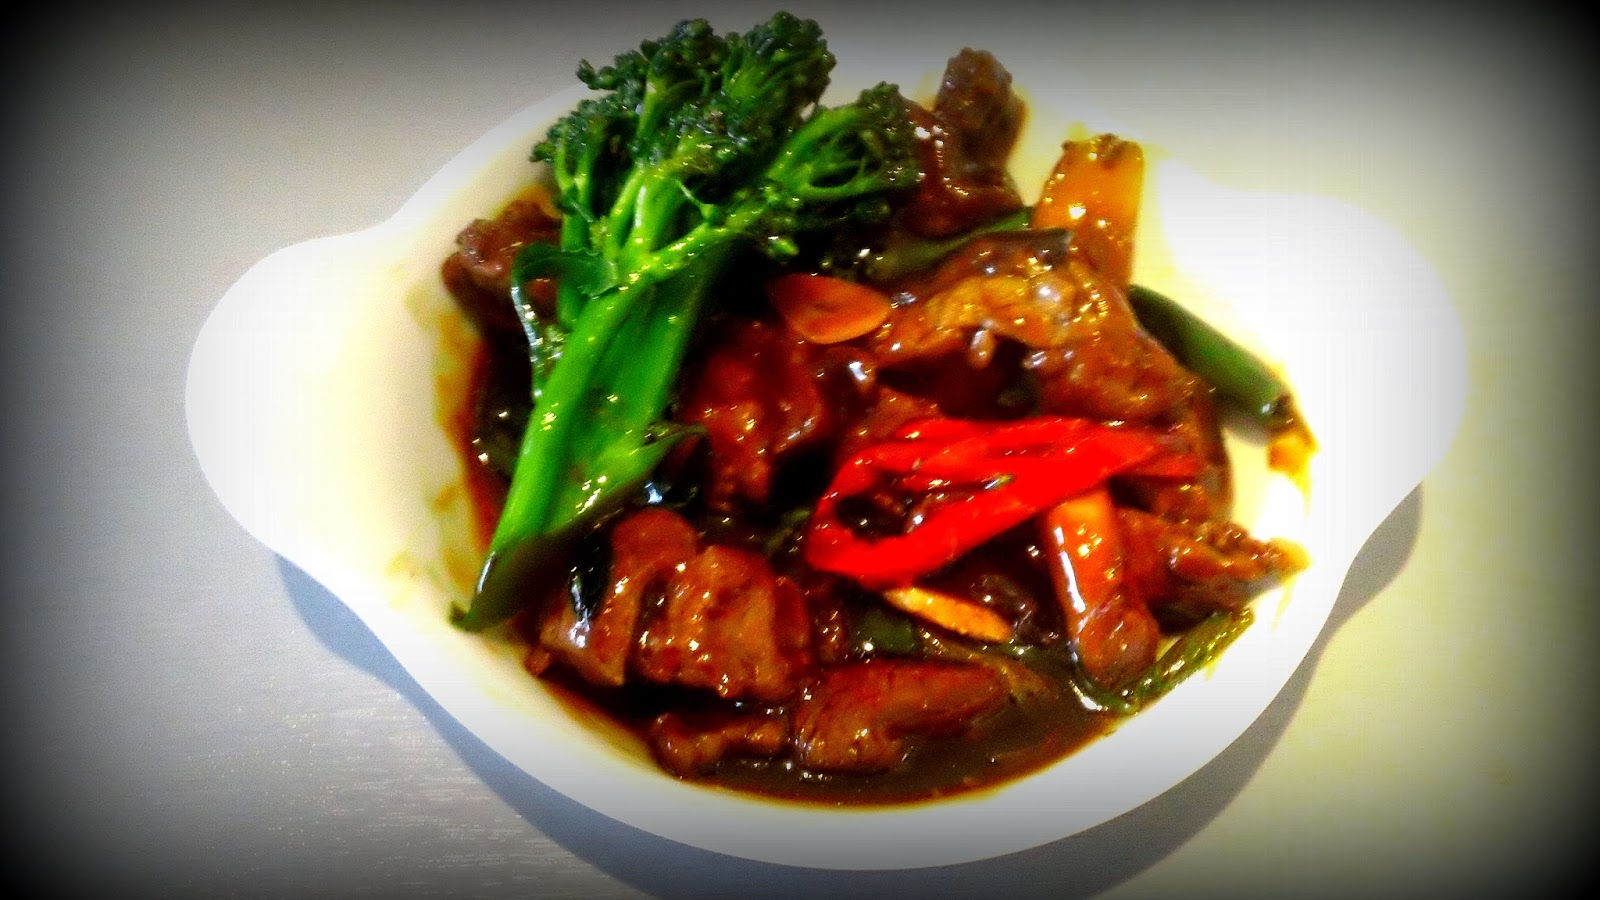 Beef, ginger and spring onion, Ozweri Wok, Stir Fry, Chinese food at home